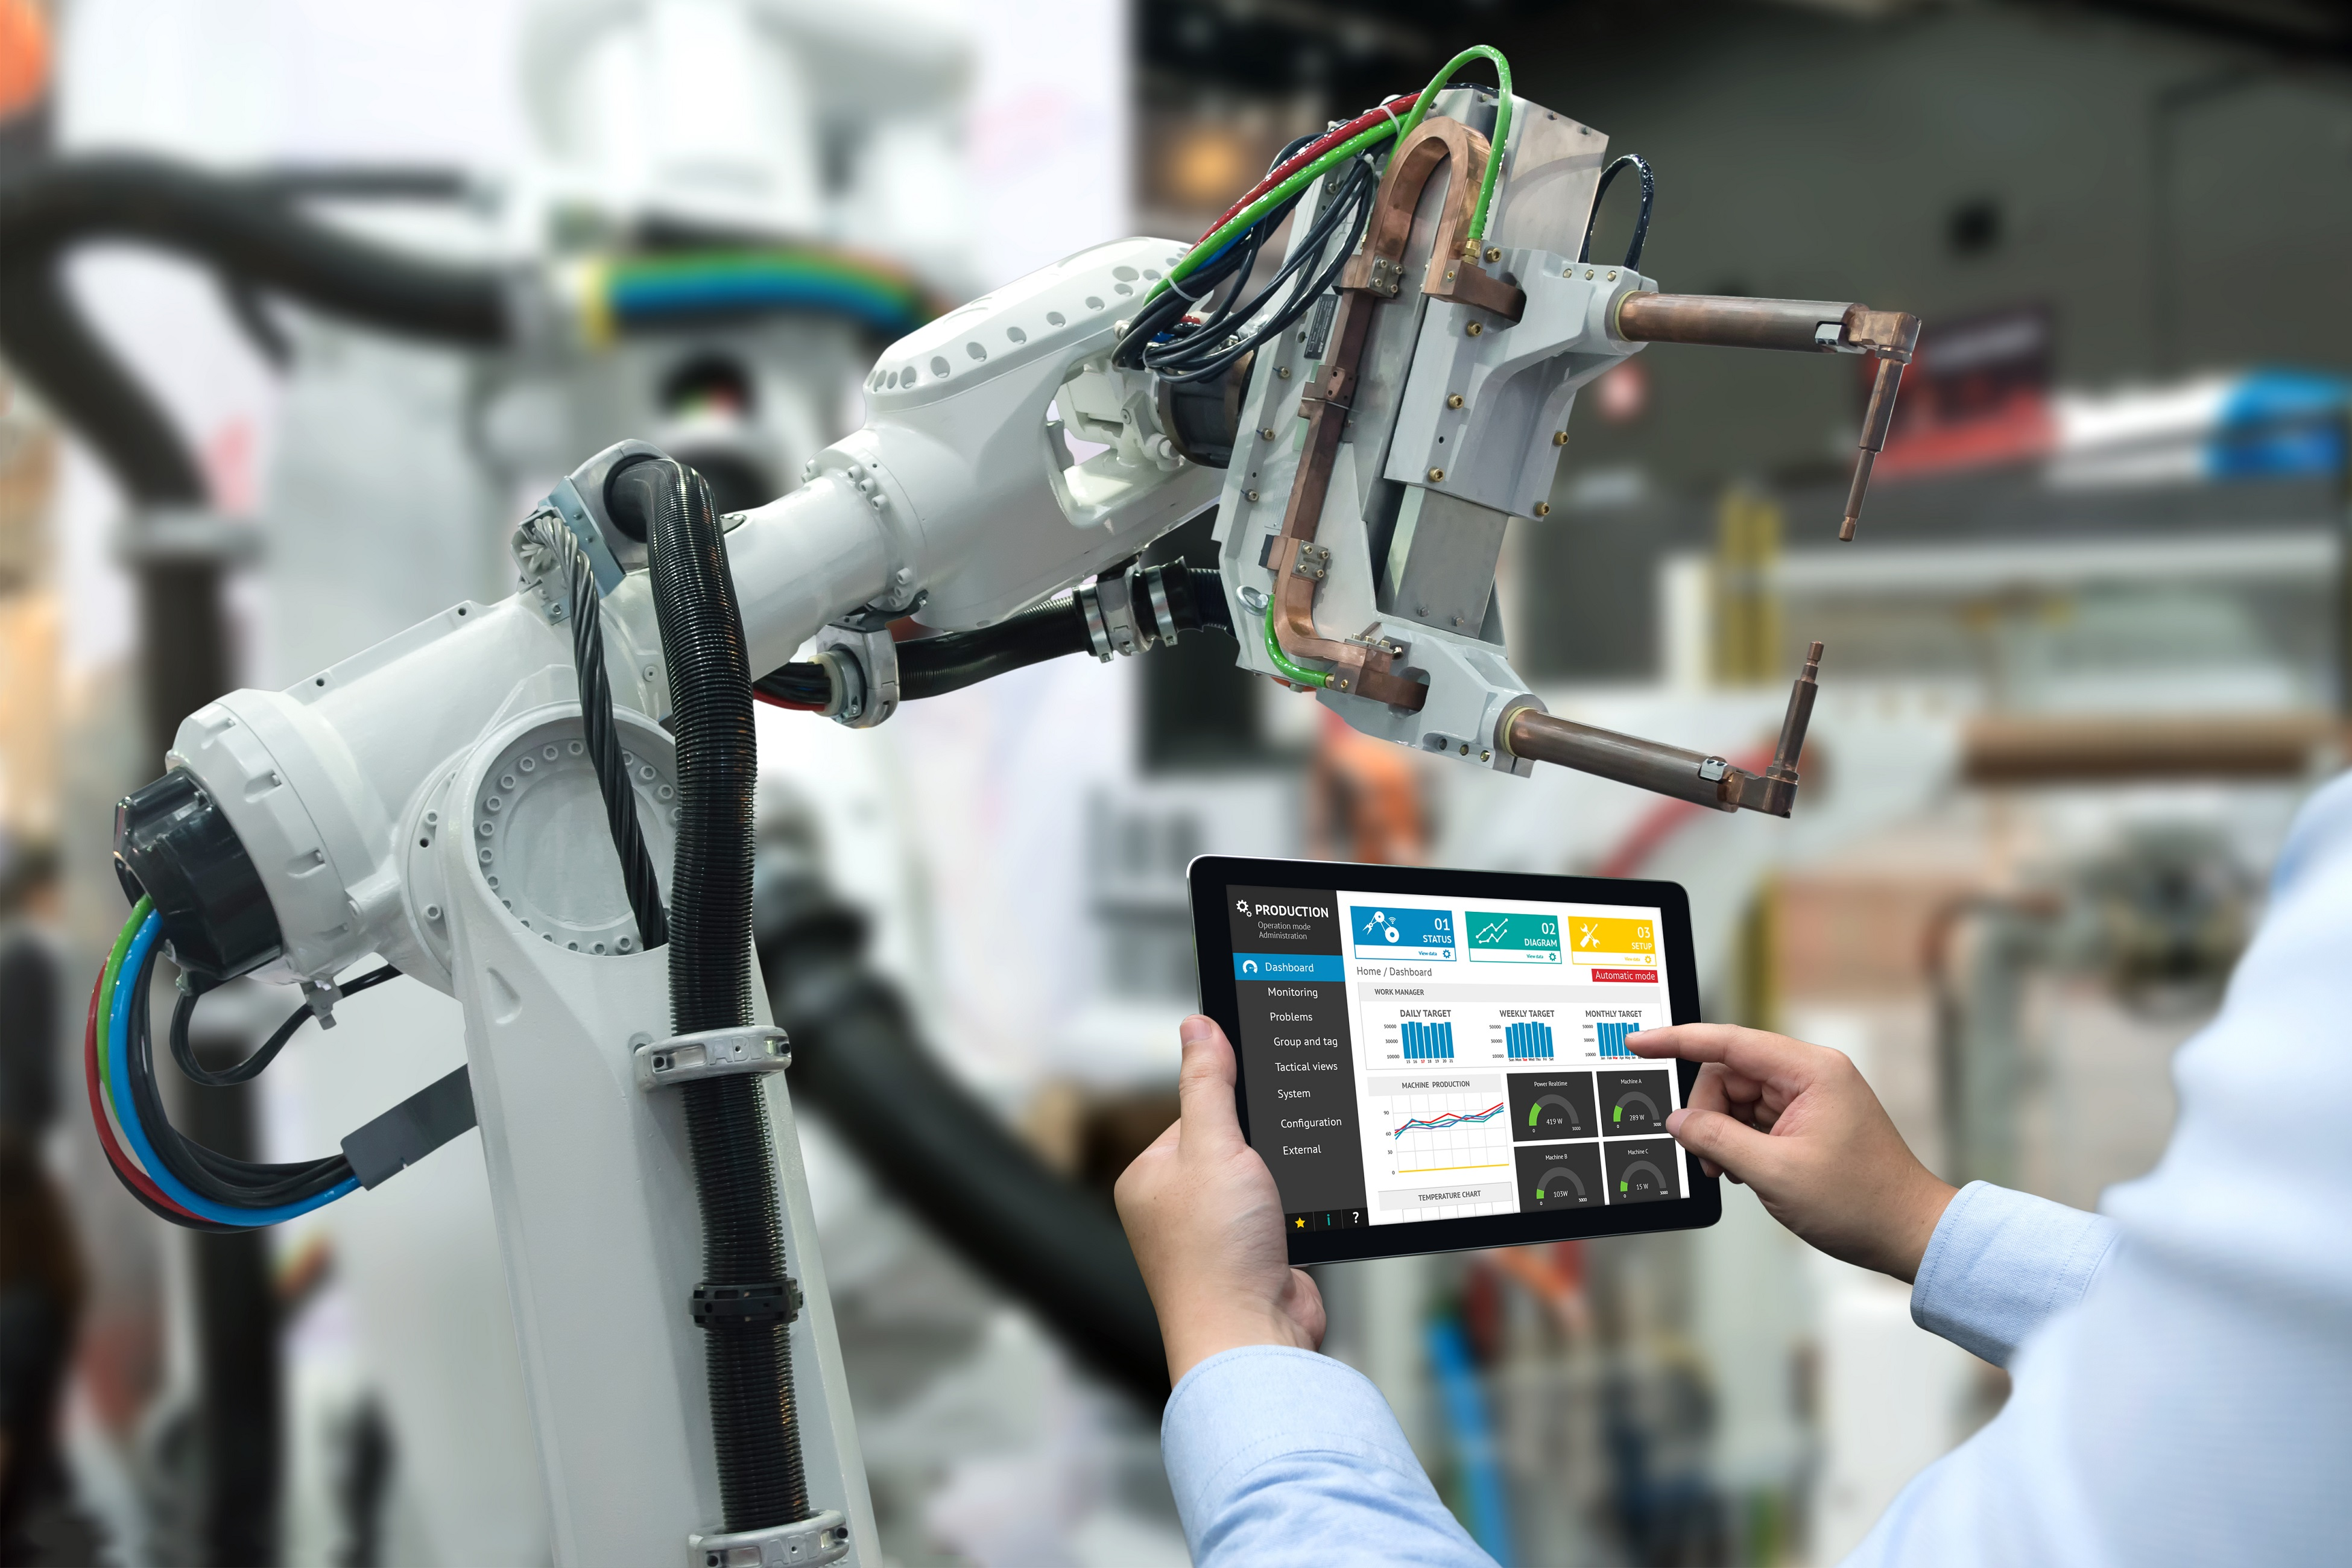 How exactly will AI impact your manufacturing business?